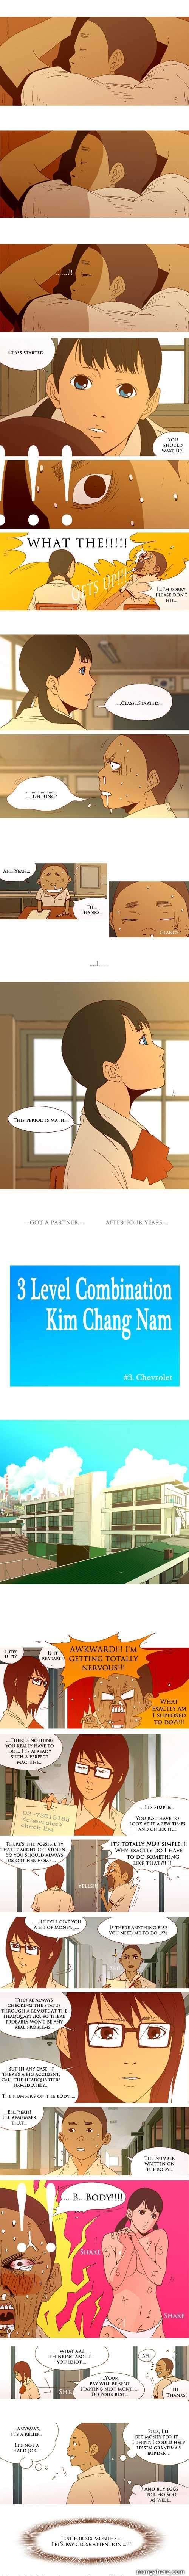 3 Level Combination 3 Page 2